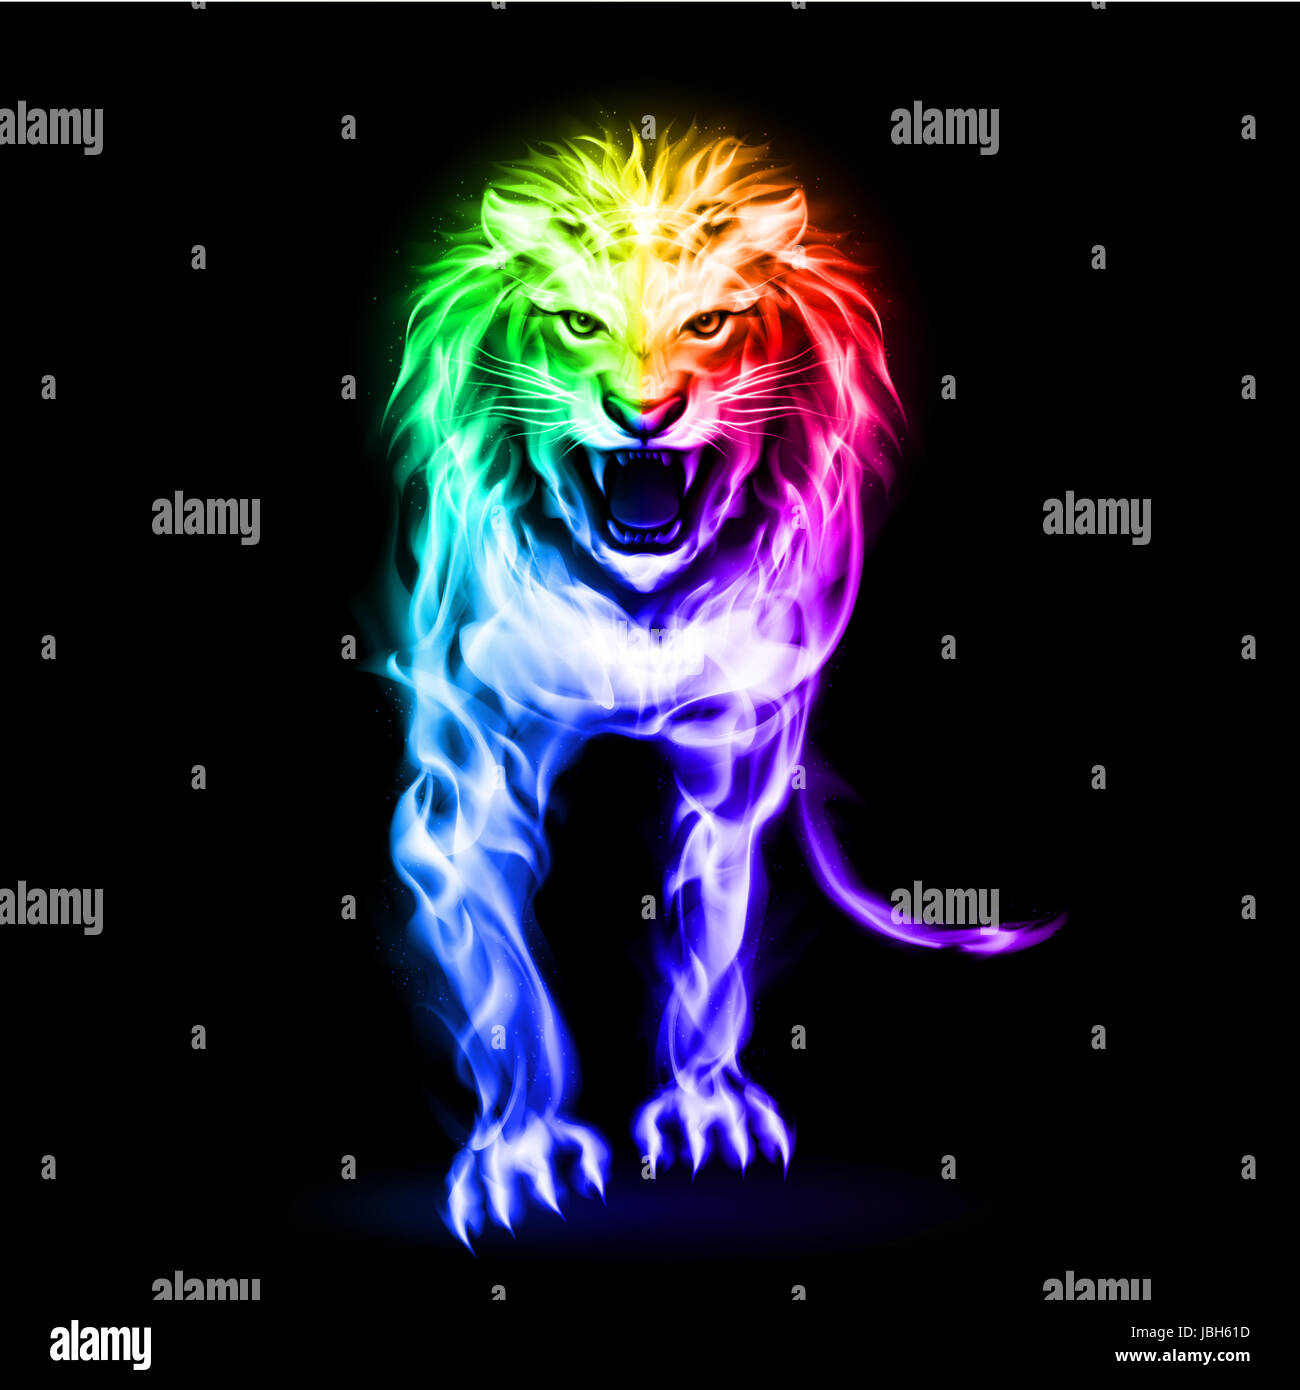 Fire lion in spectrum colors on black background - Stock Image